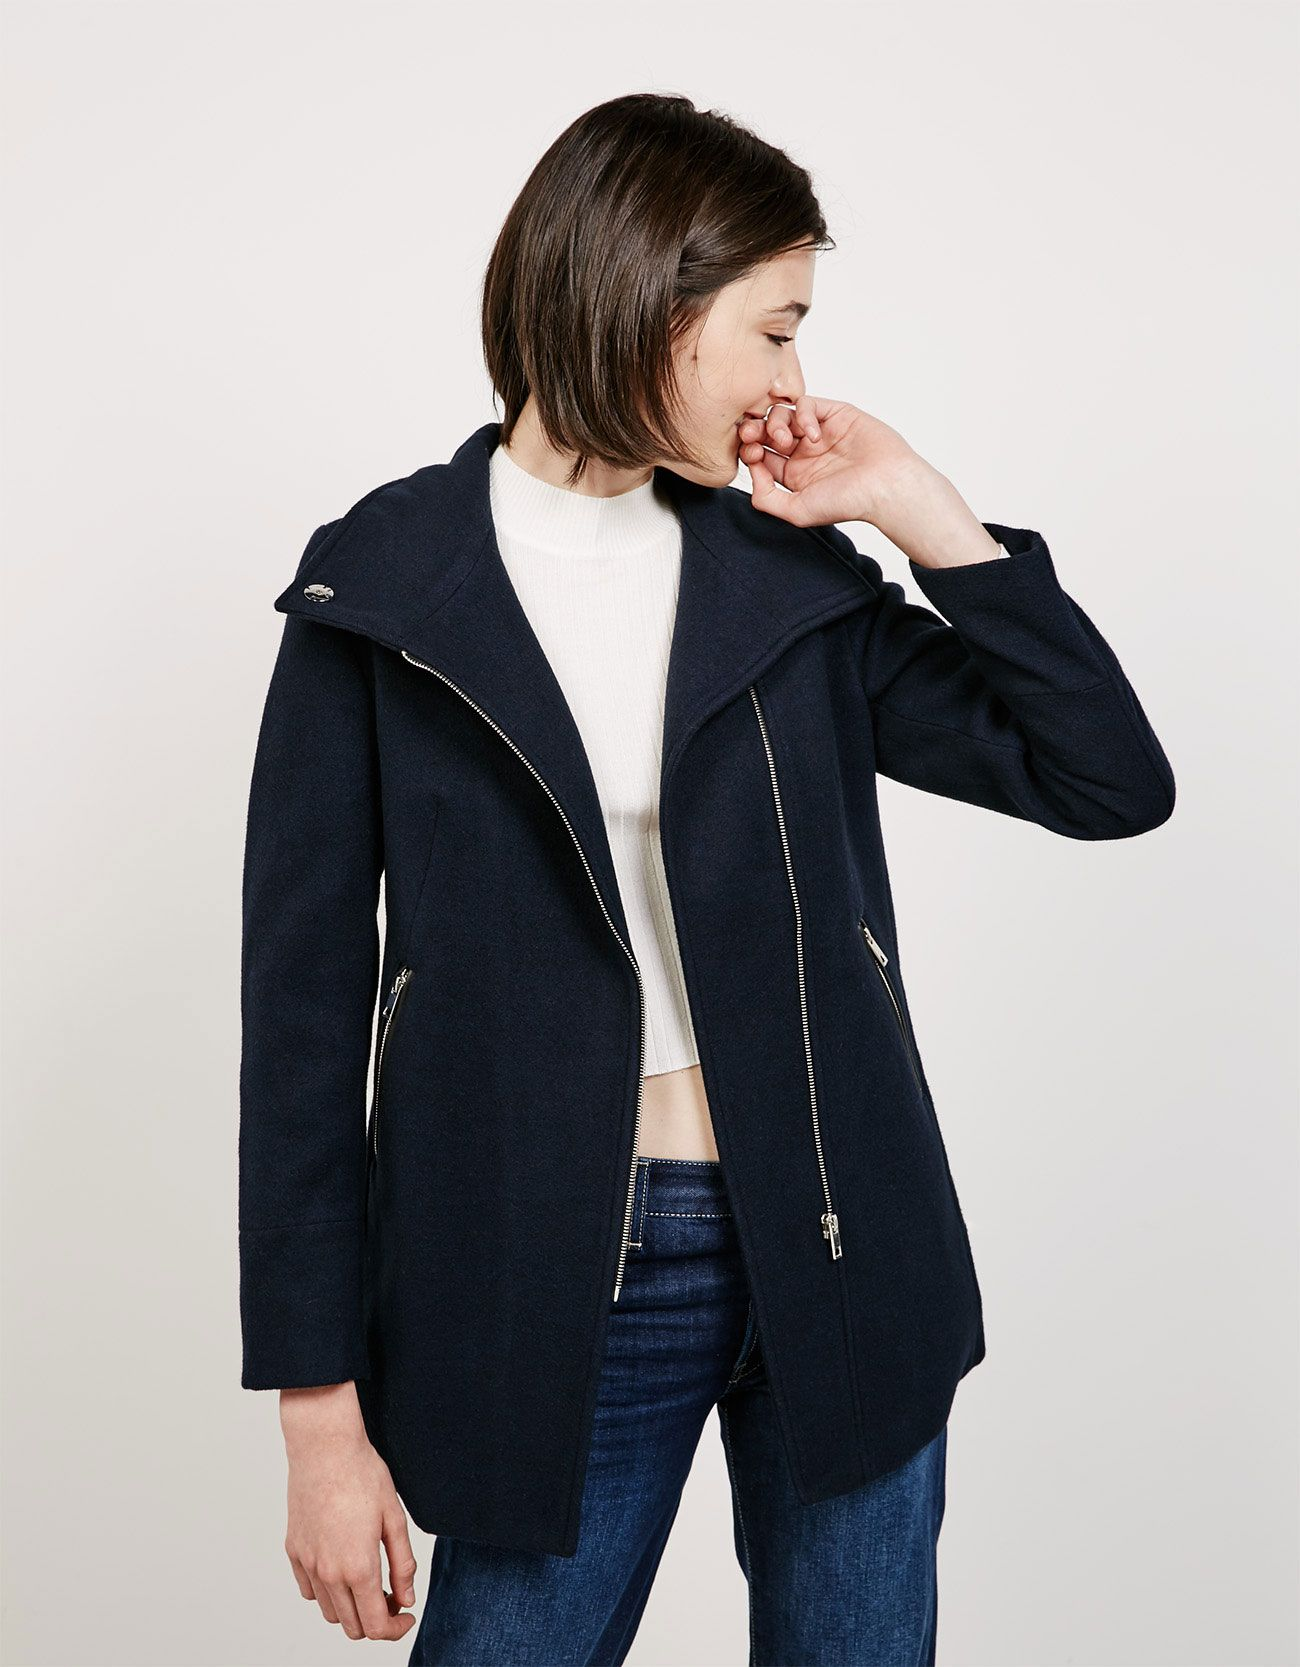 High Neck Coat With Side Zip Discover This And Many More Items In Bershka With New Products Every Week Jackets Side Zip Jacket High Neck Coat [ 1667 x 1300 Pixel ]